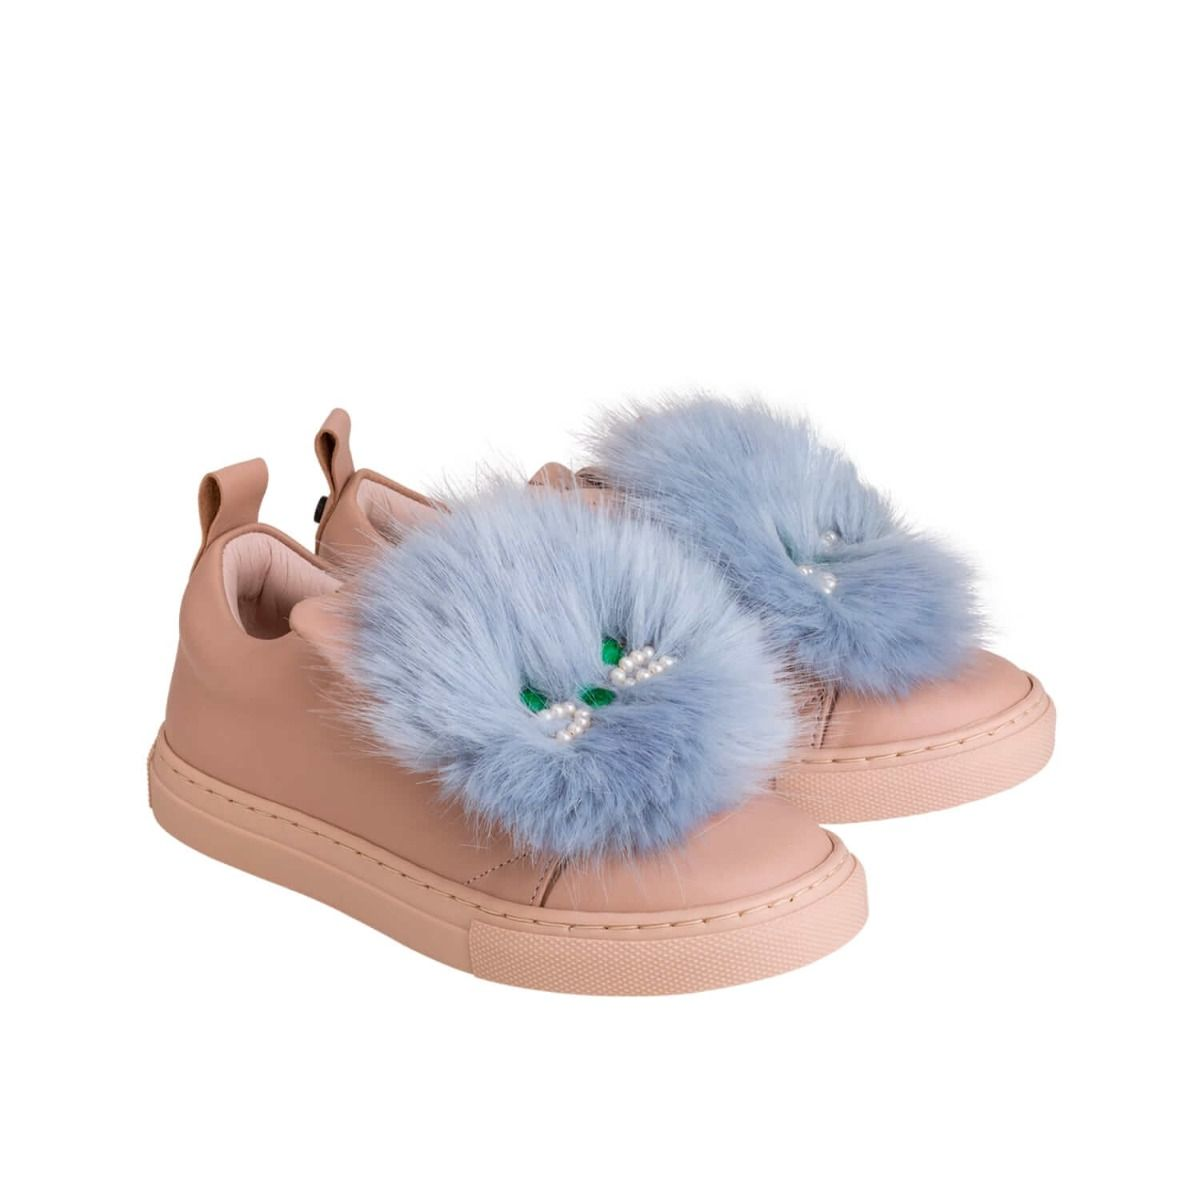 Baby and girl's sneakers in pale pink leather with light blue fur applique and cat face applique